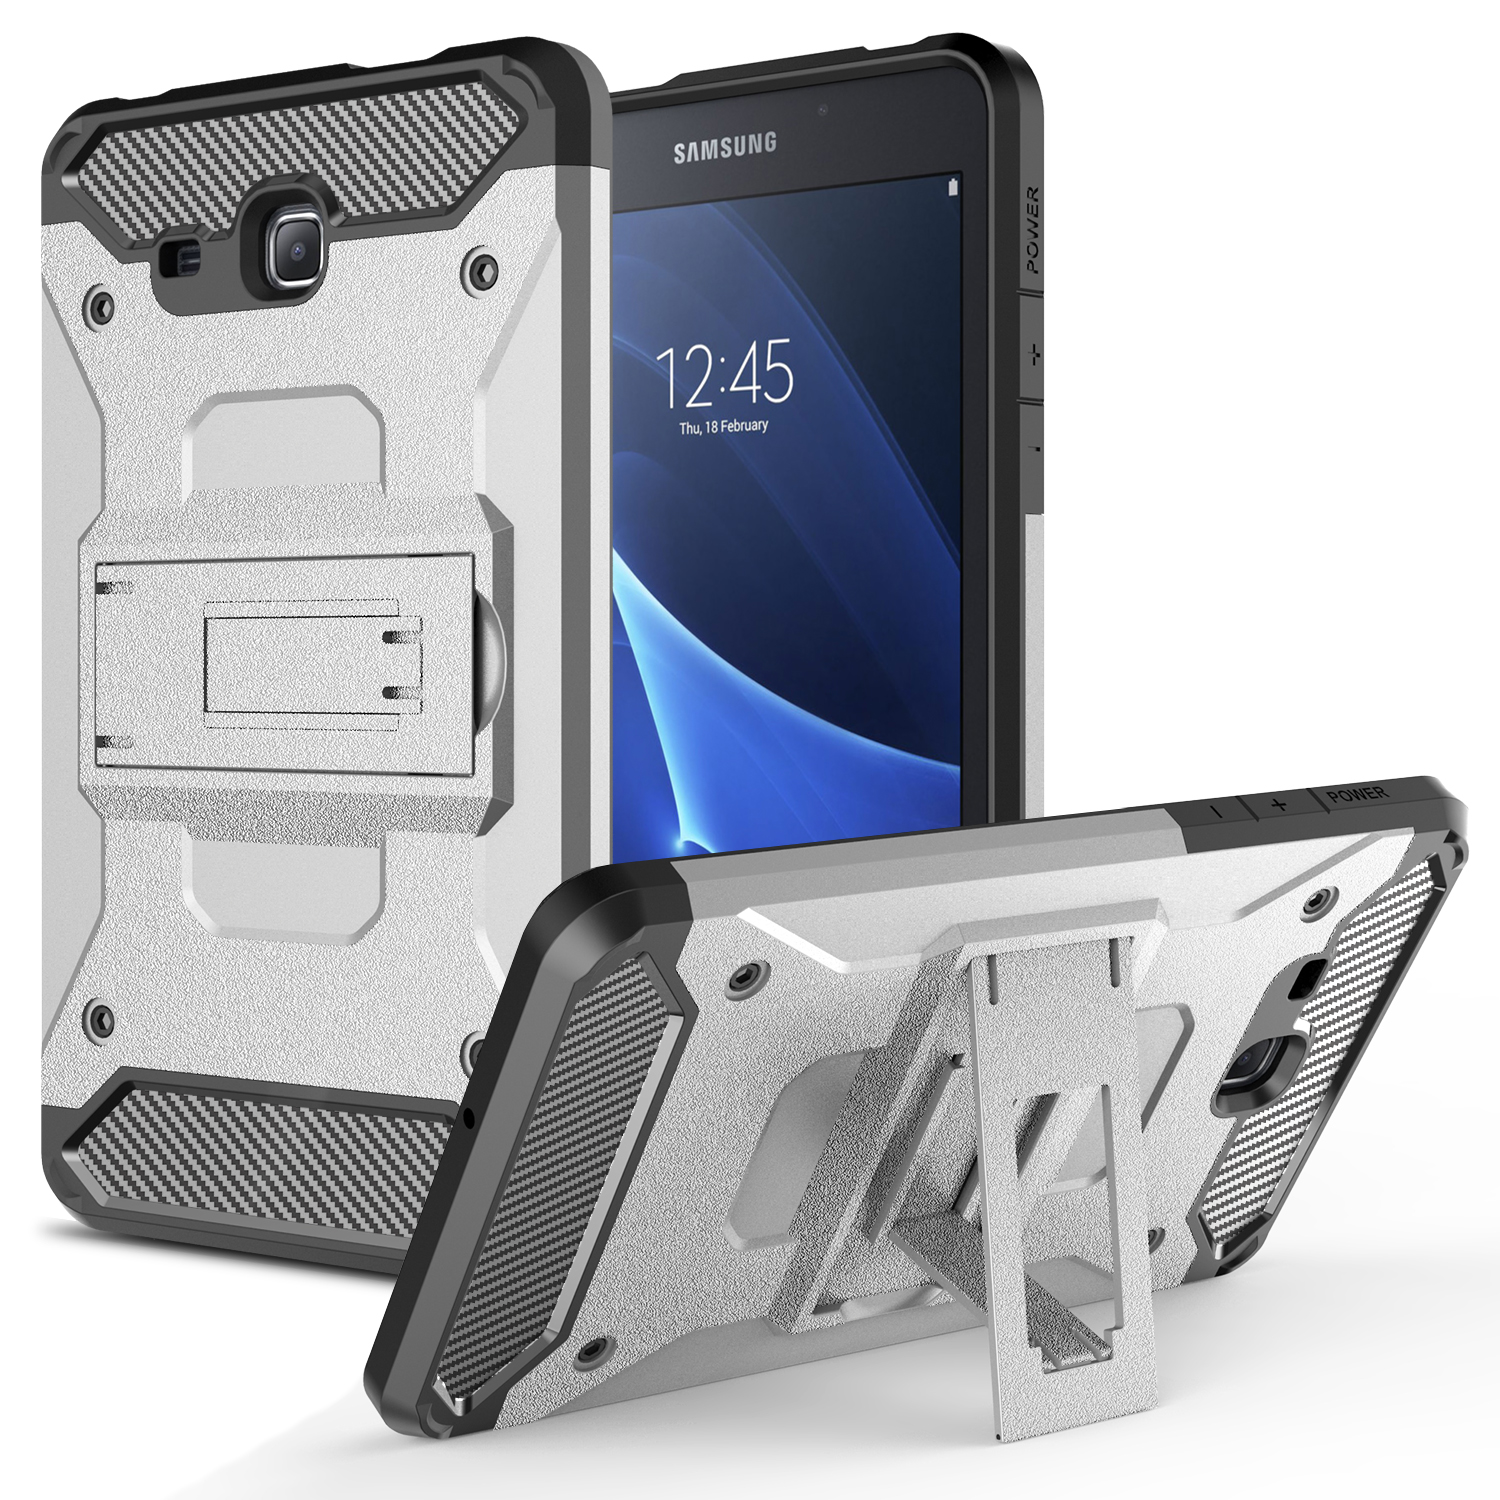 Galaxy Tab A 7.0 Case ((7 Inches) Heavy Duty Armor ShockProof Protective Combo Kickstand Case Cover with Kickstand for Samsung Galaxy Tab A 7.0 / SM-T280 (Silver)